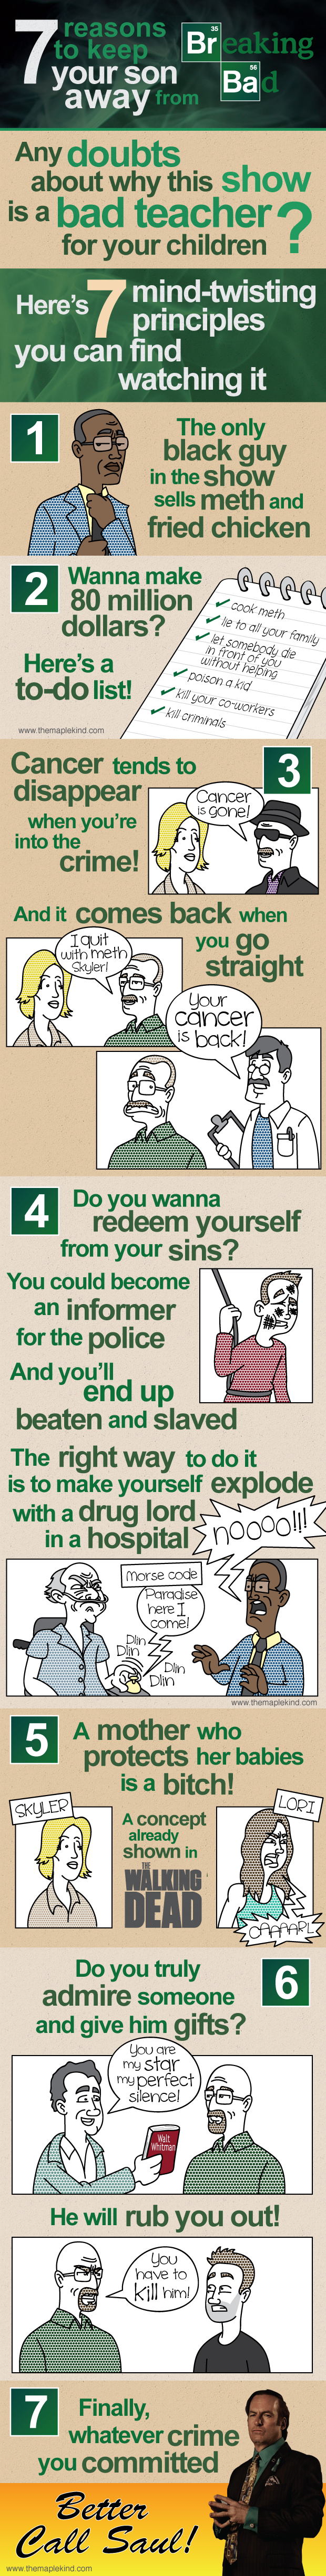 7 Reasons To Keep Your Son Away From Breaking Bad